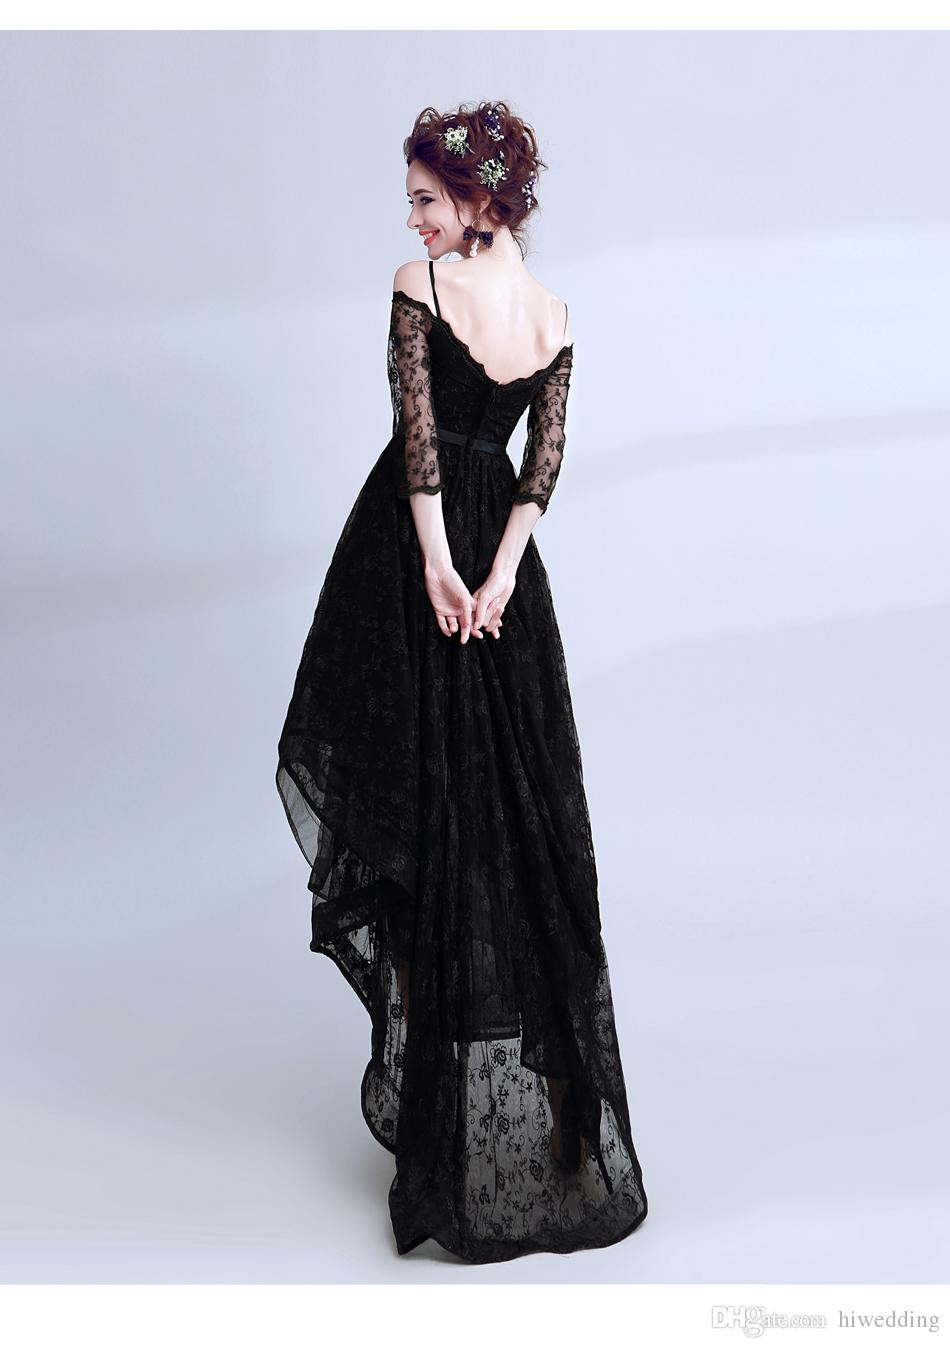 2017 Lace Black Sexy Evening Dresses Spaghetti A-line Hi-Lo Prom Dresses Cheap Vintage Formal Party Bridesmaid Gowns